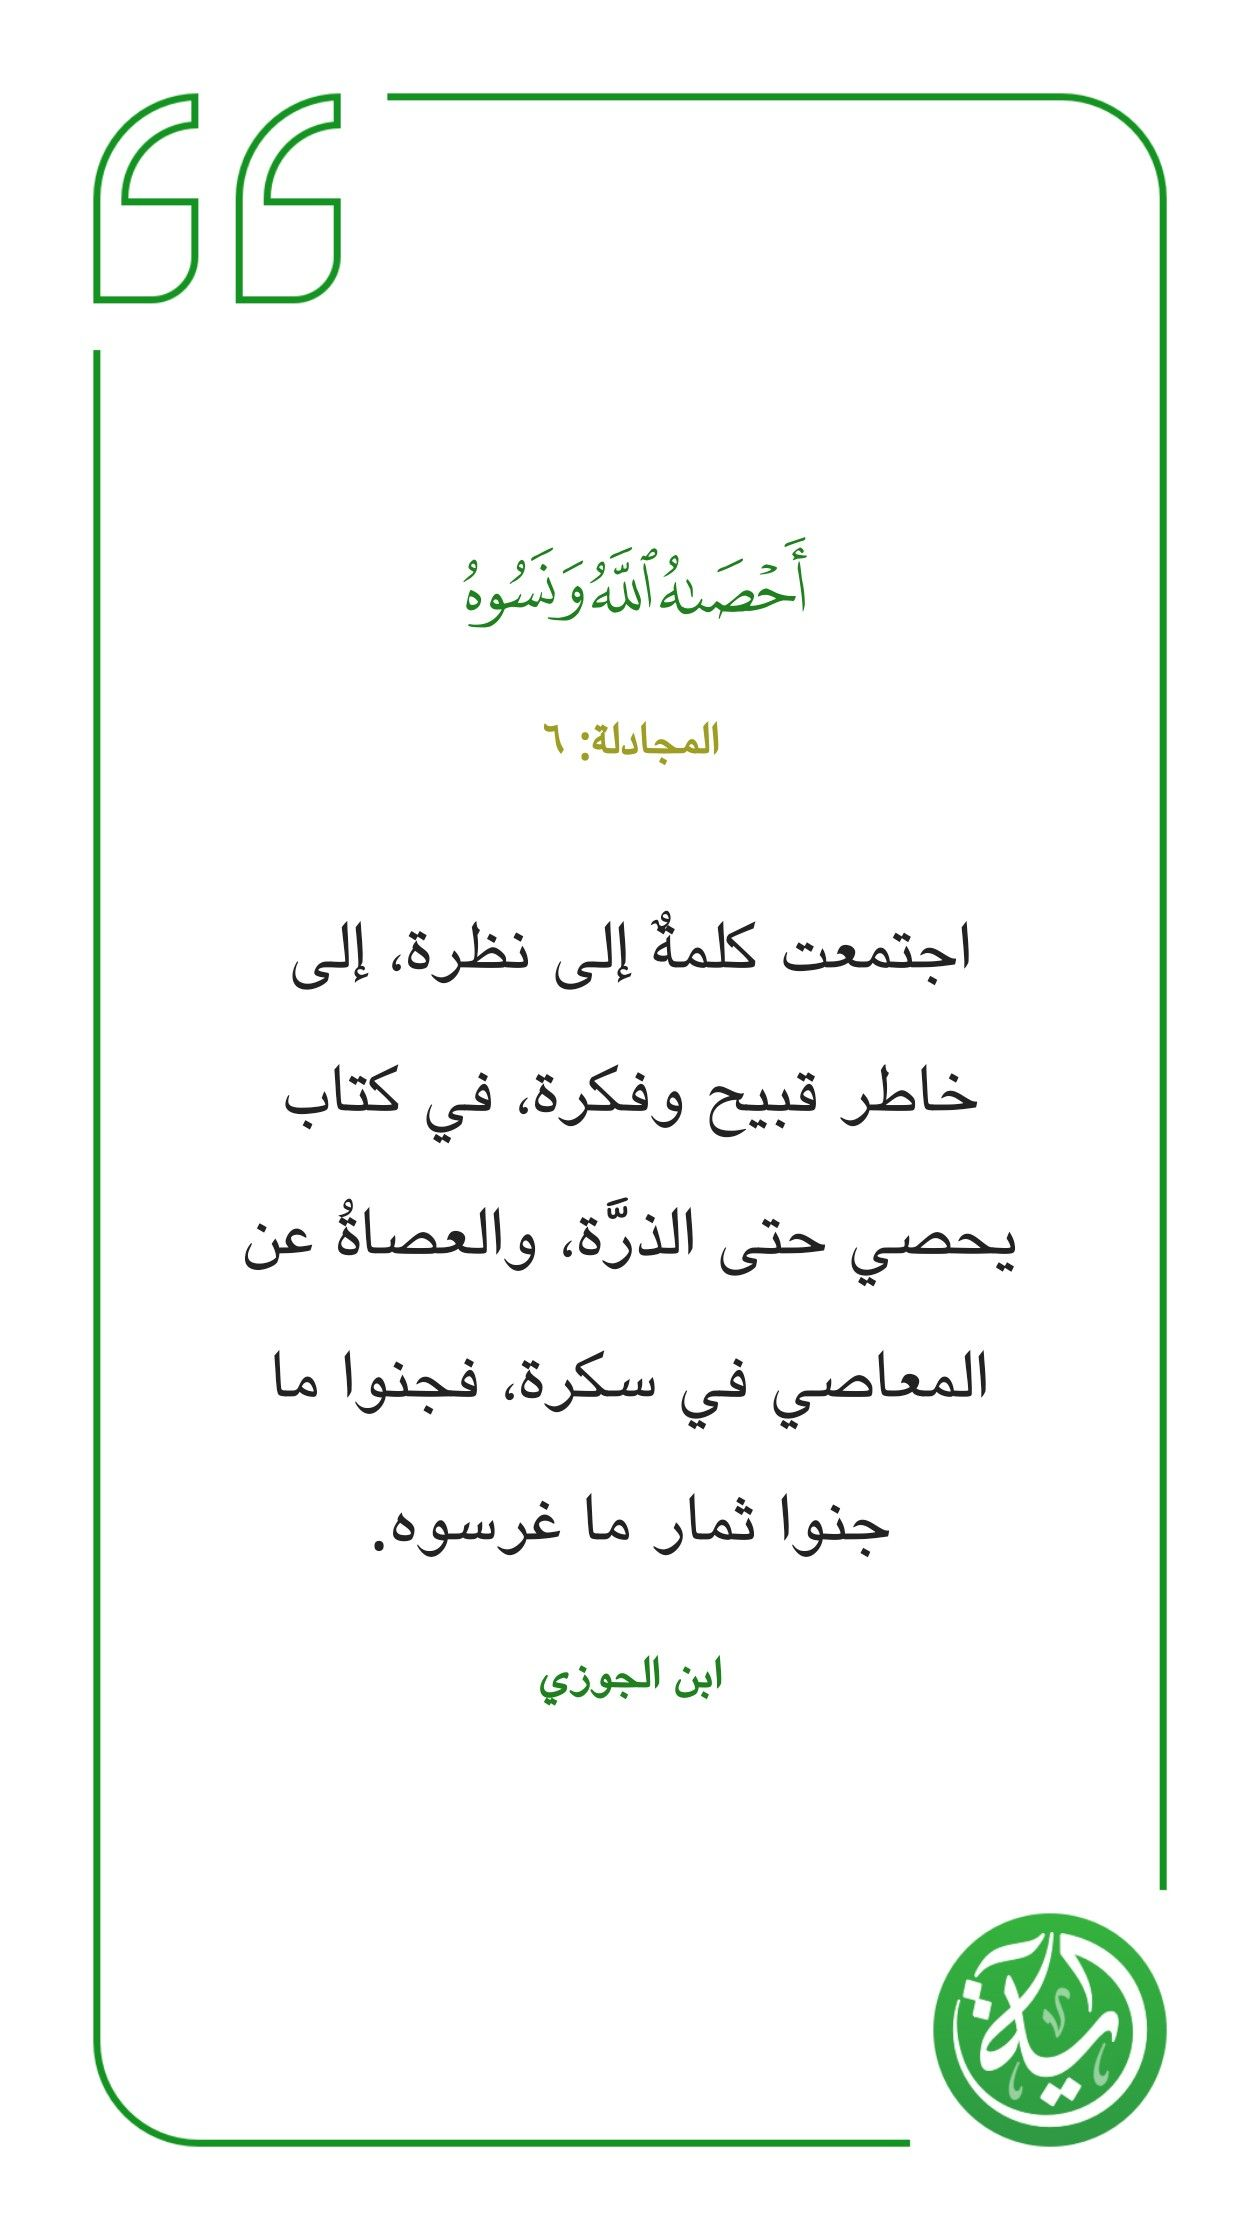 Pin By Kenza On إسلامي Islamic Quotes Quran Tafseer Salaah